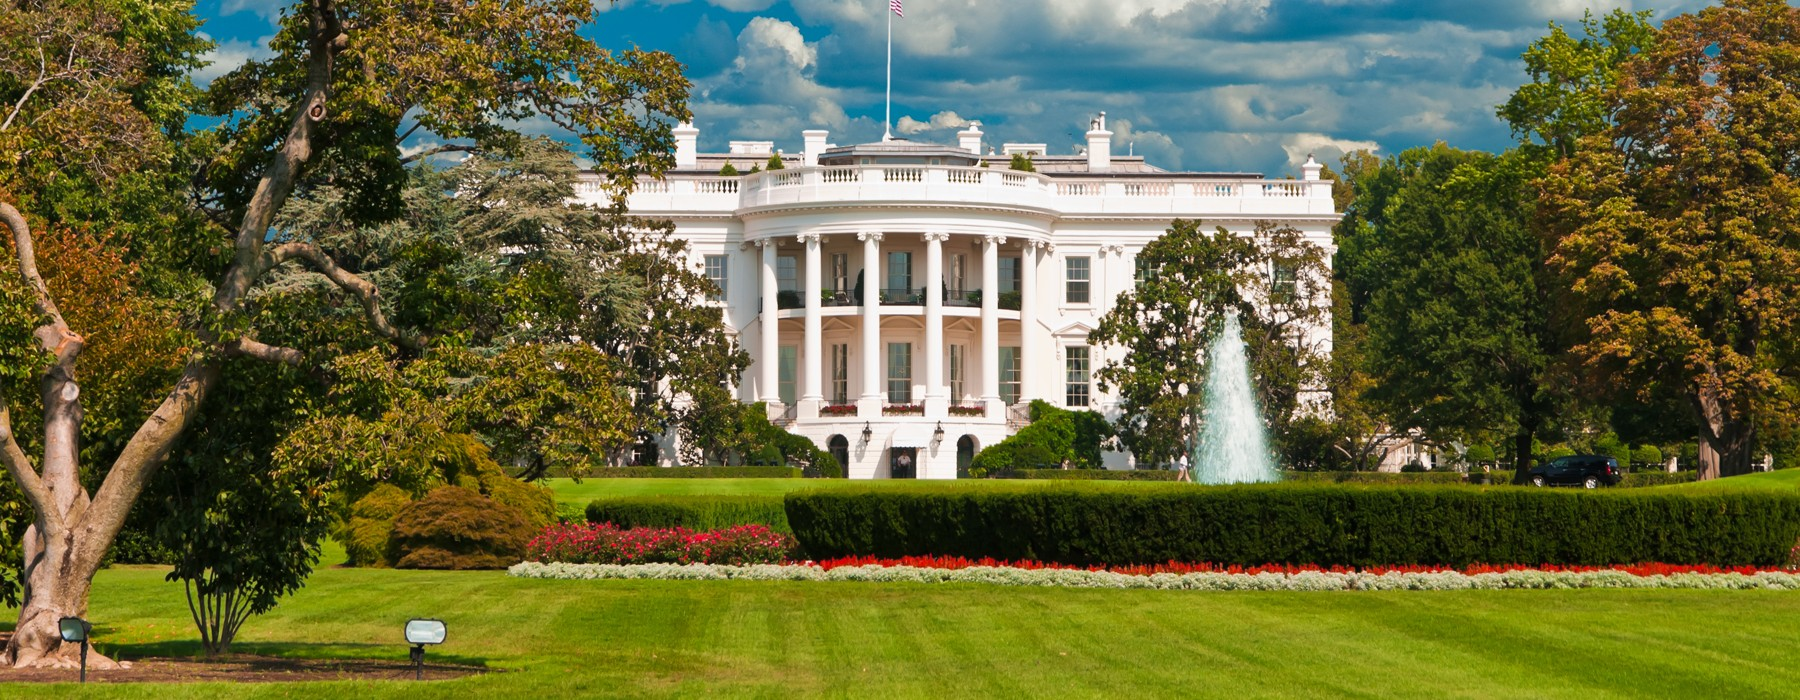 home_whitehouse_0